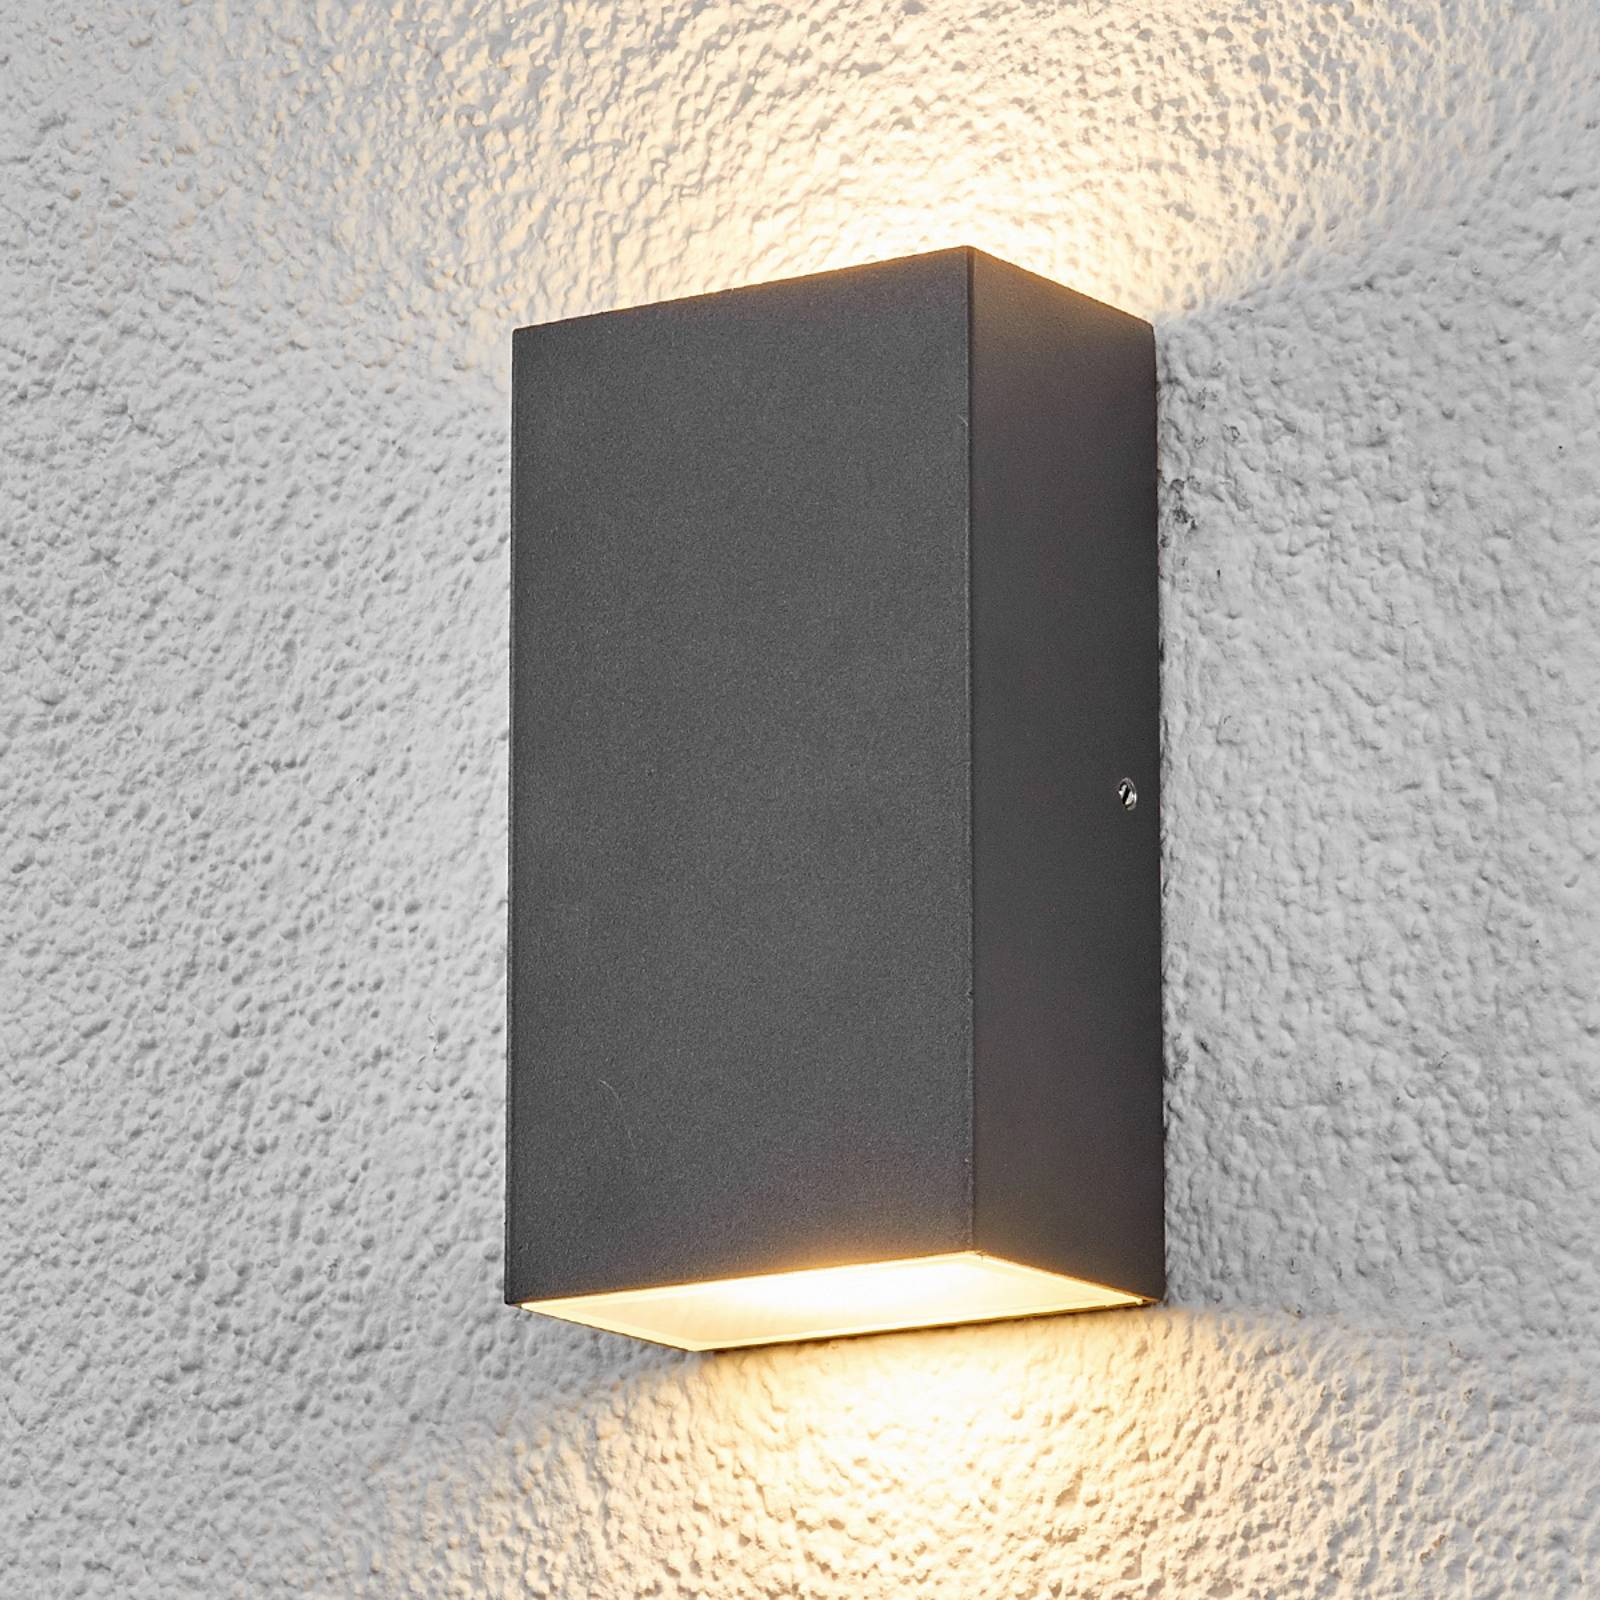 Square LED outdoor wall light Weerd from Lindby